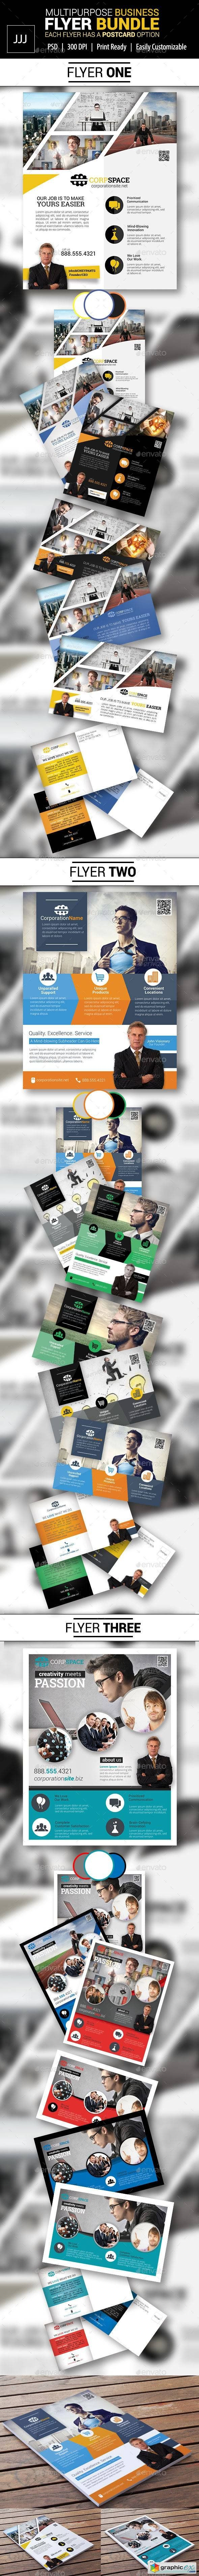 Business Flyer Bundle with Postcard Options